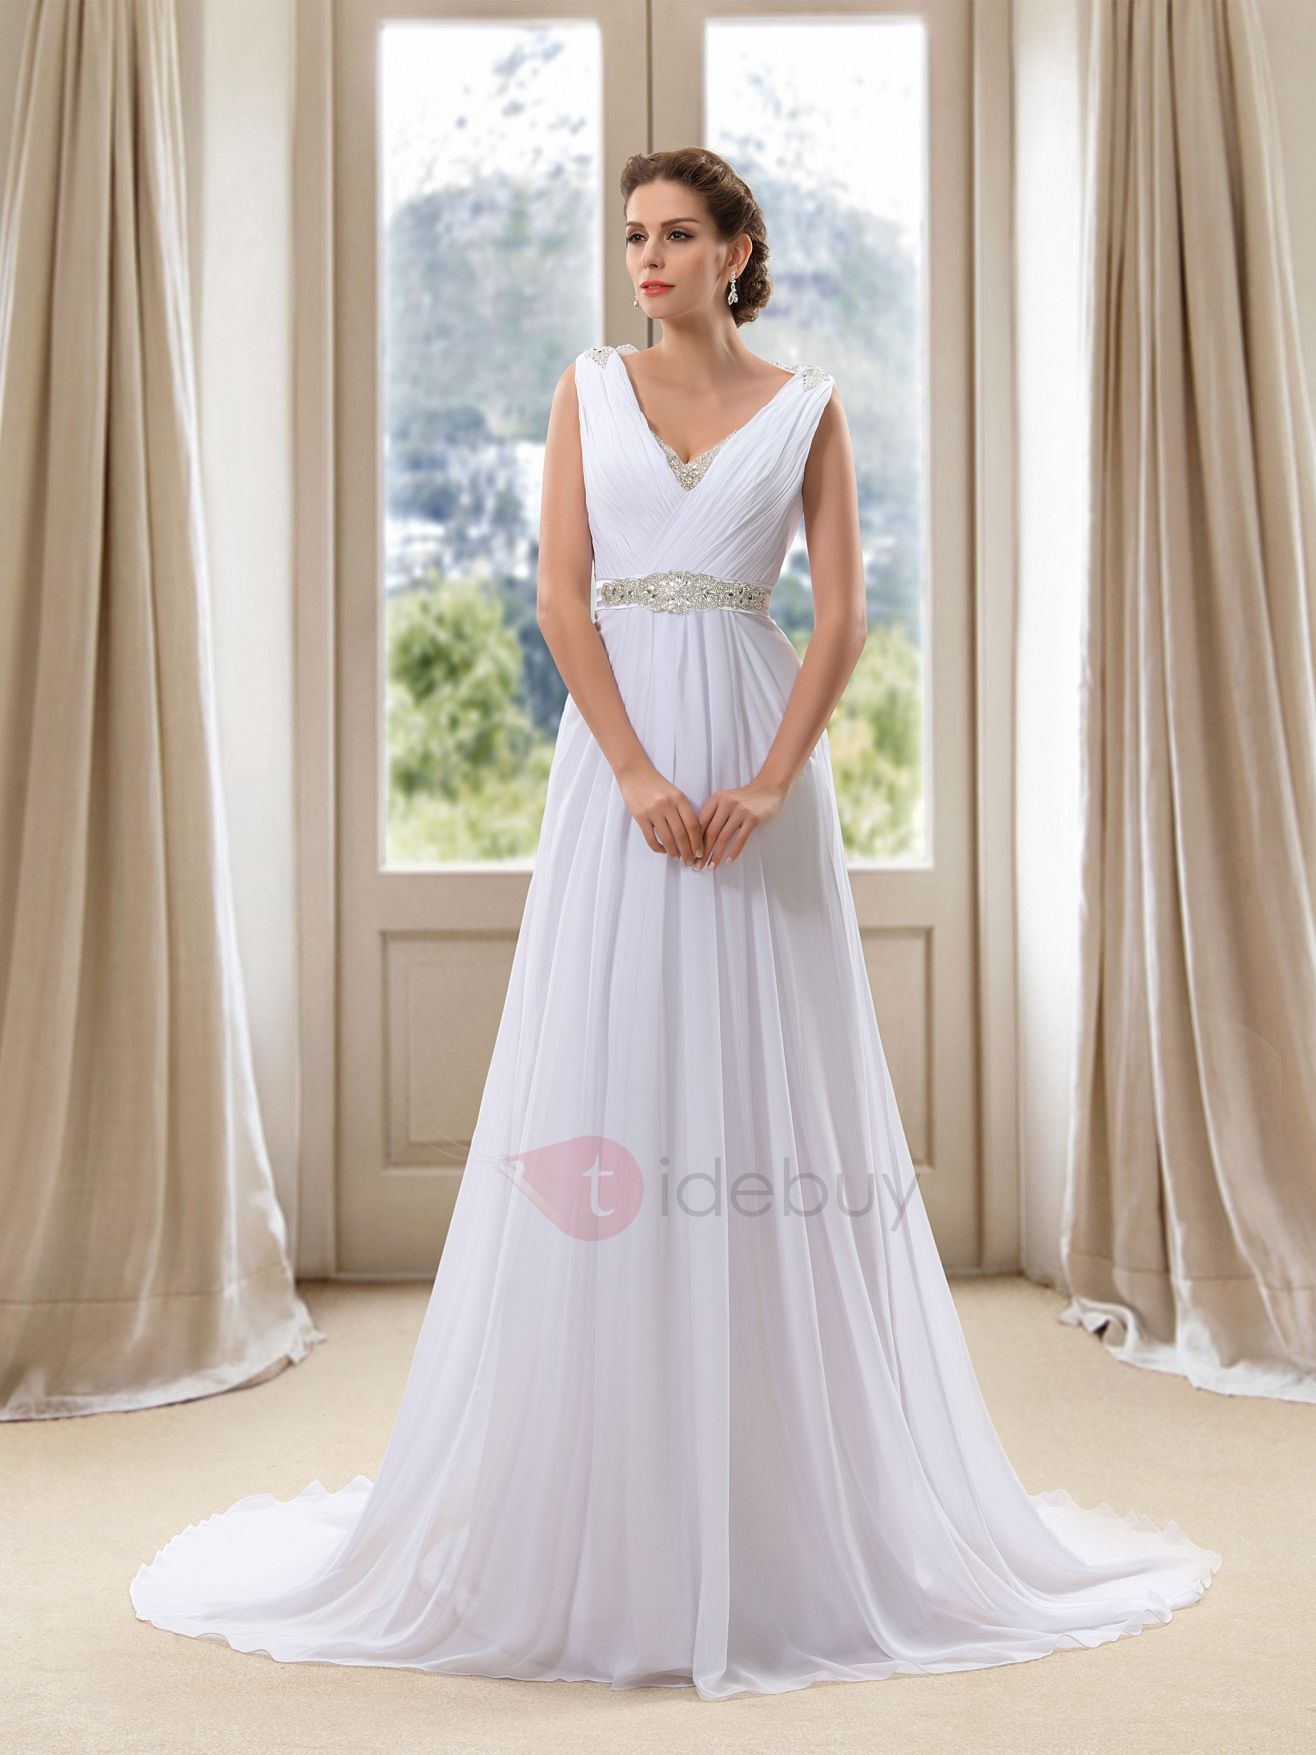 Dress for wedding party female   White Simple Wedding Dresses  Cute Dresses for A Wedding Check